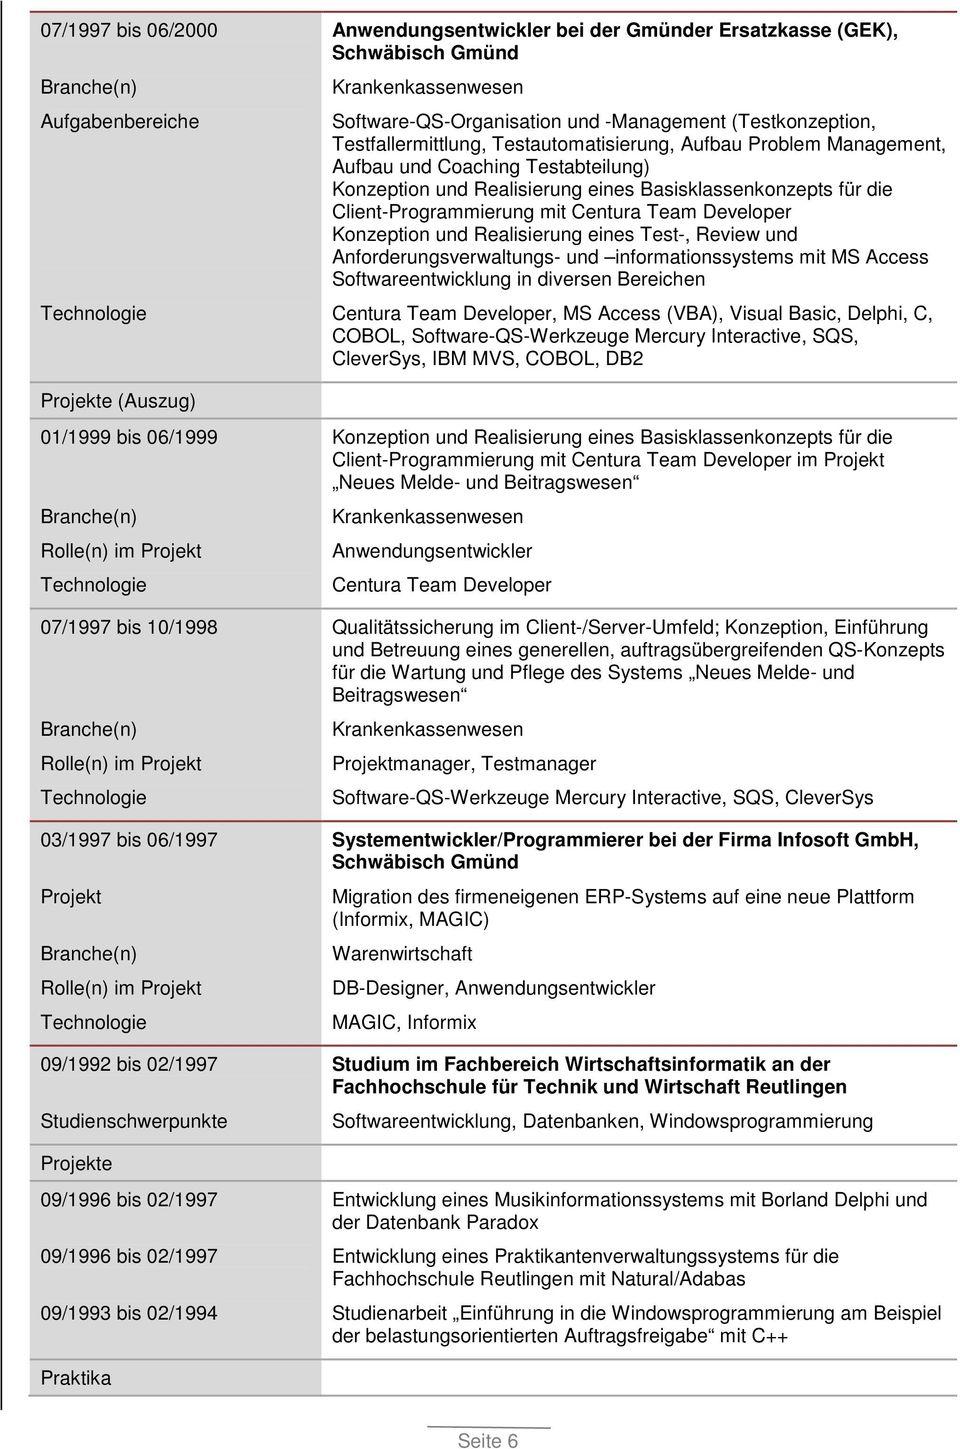 Anforderungsverwaltungs- und informationssystems mit MS Access Softwareentwicklung in diversen Bereichen Centura Team Developer, MS Access (VBA), Visual Basic, Delphi, C, COBOL, Software-QS-Werkzeuge